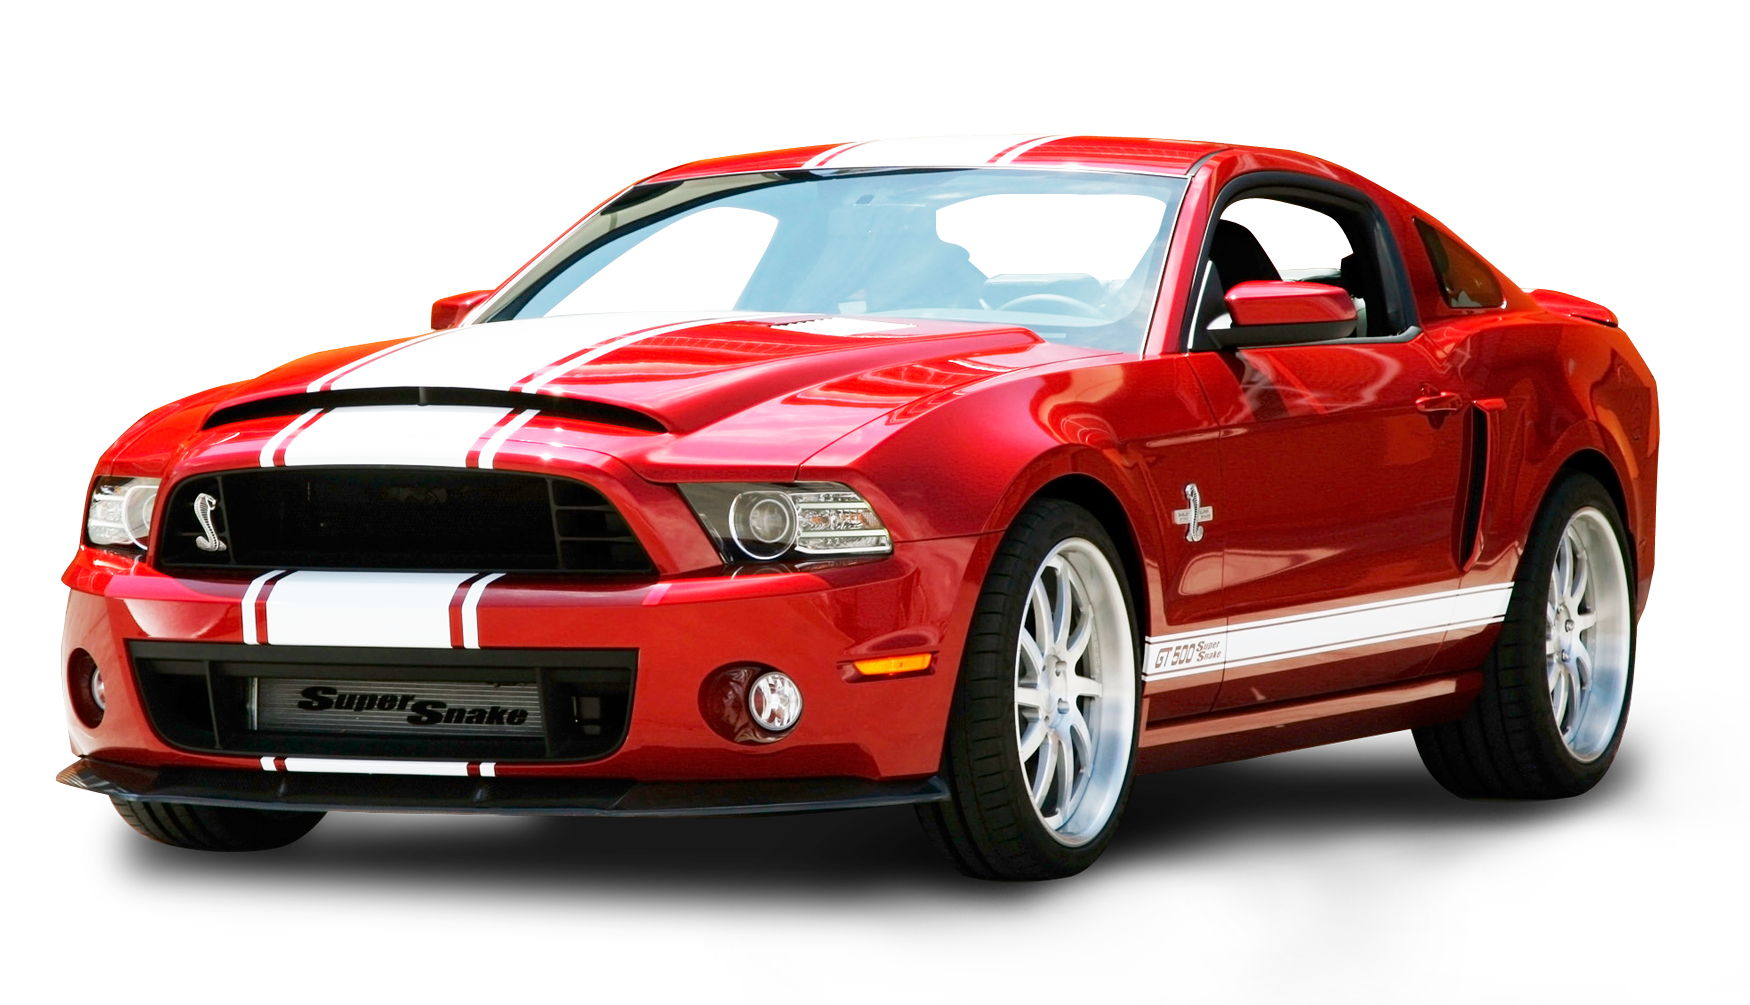 Ford Mustang PNG Image.